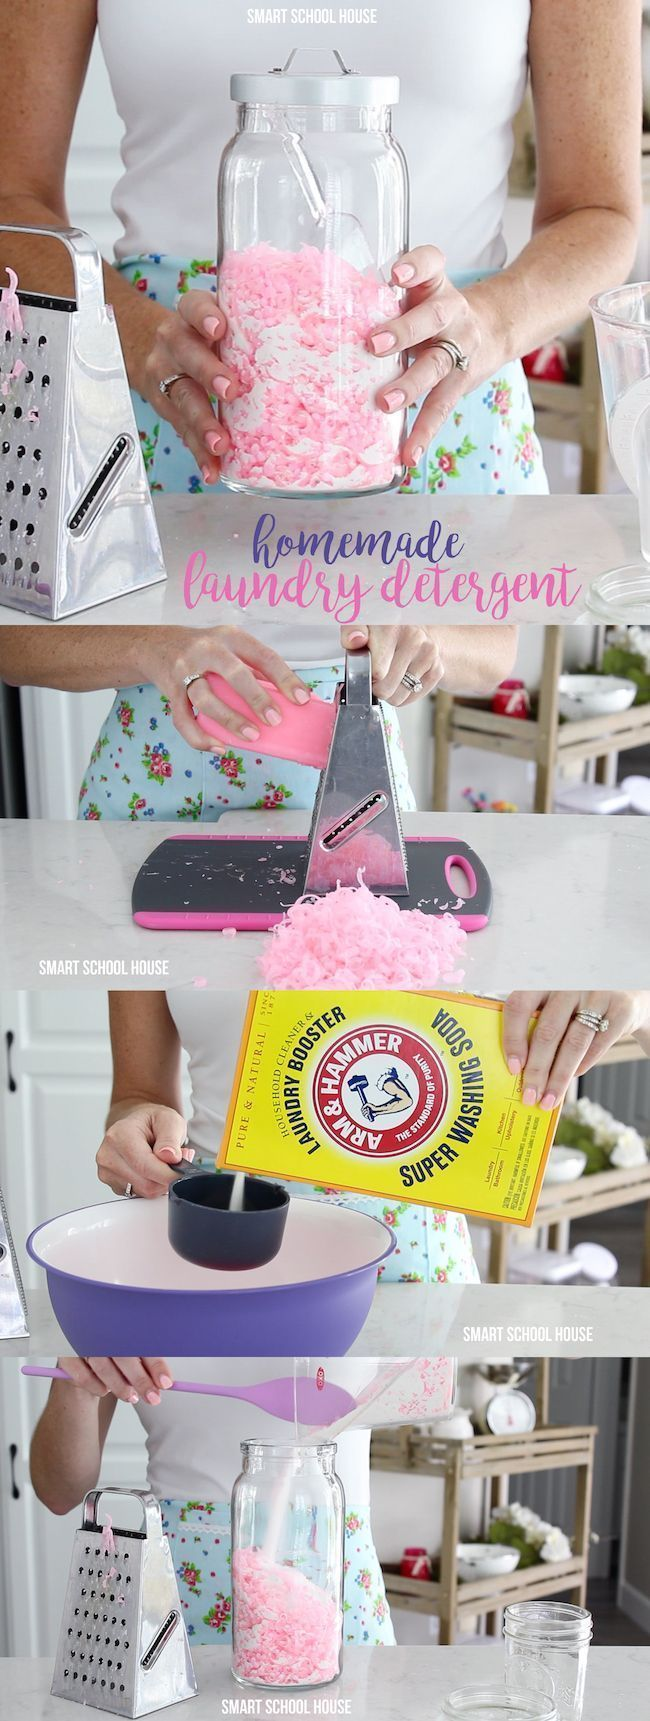 How To Make Laundry Detergent Laundry Detergent Recipe